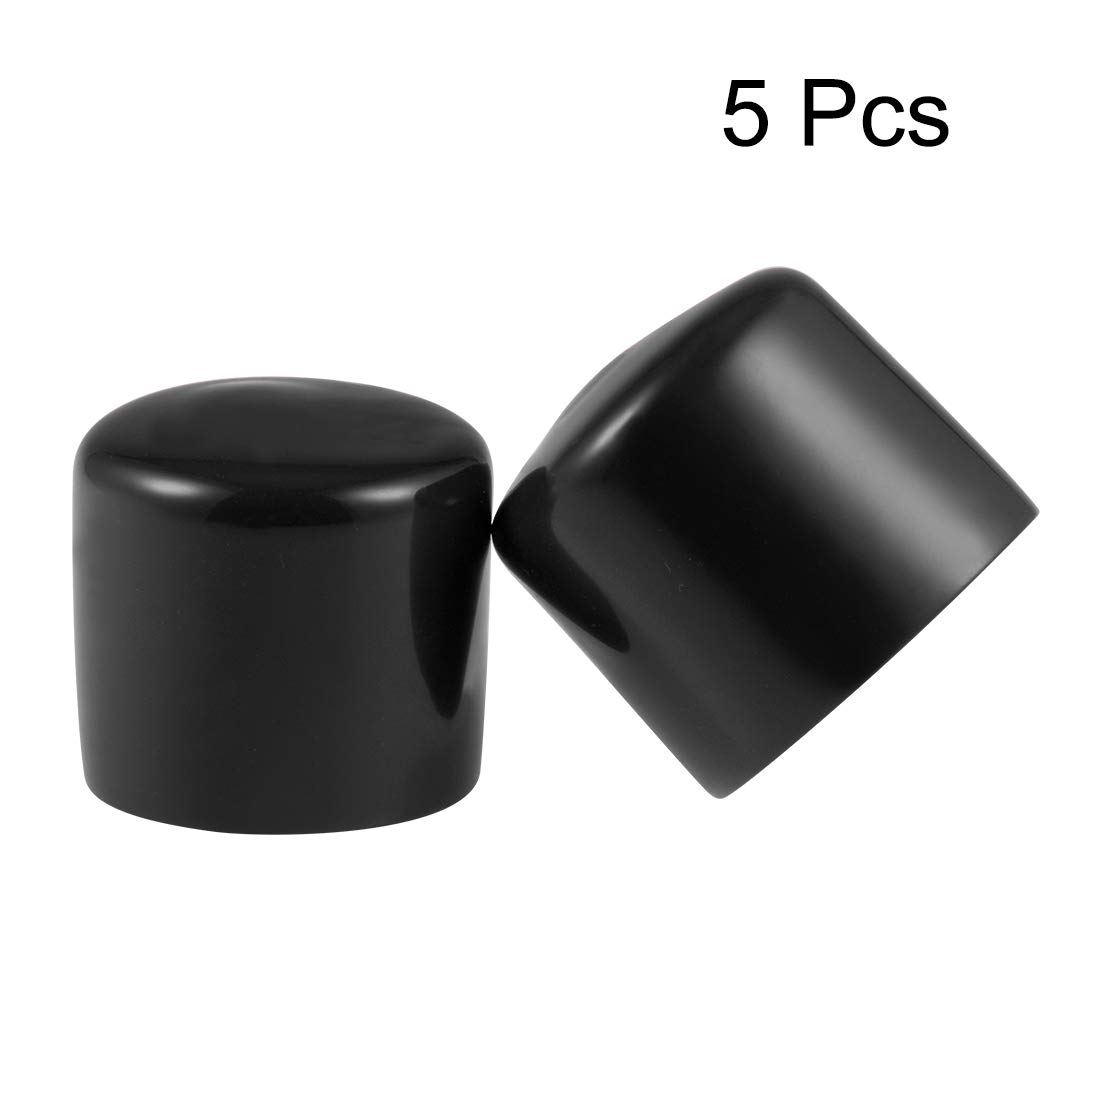 sourcing map Rubber End Caps 27mm ID Round End Cap Cover Black Screw Thread Protectors 5pcs